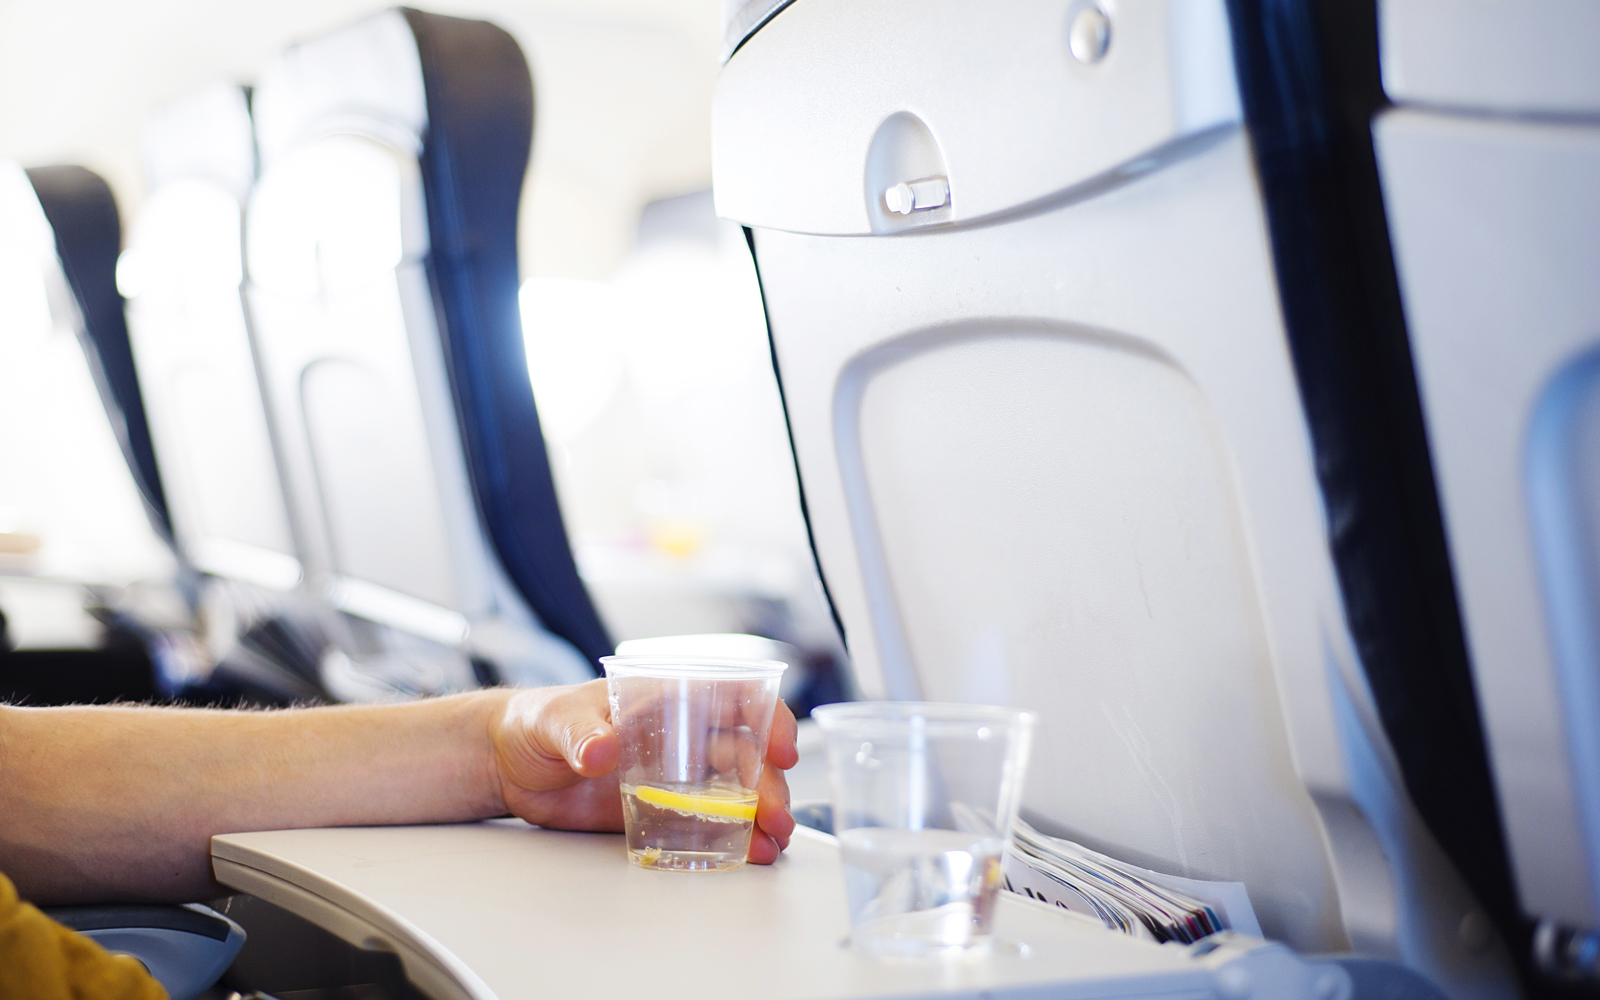 On the World's Longest Flight, Crew Serve Nearly 12 Drinks per Person